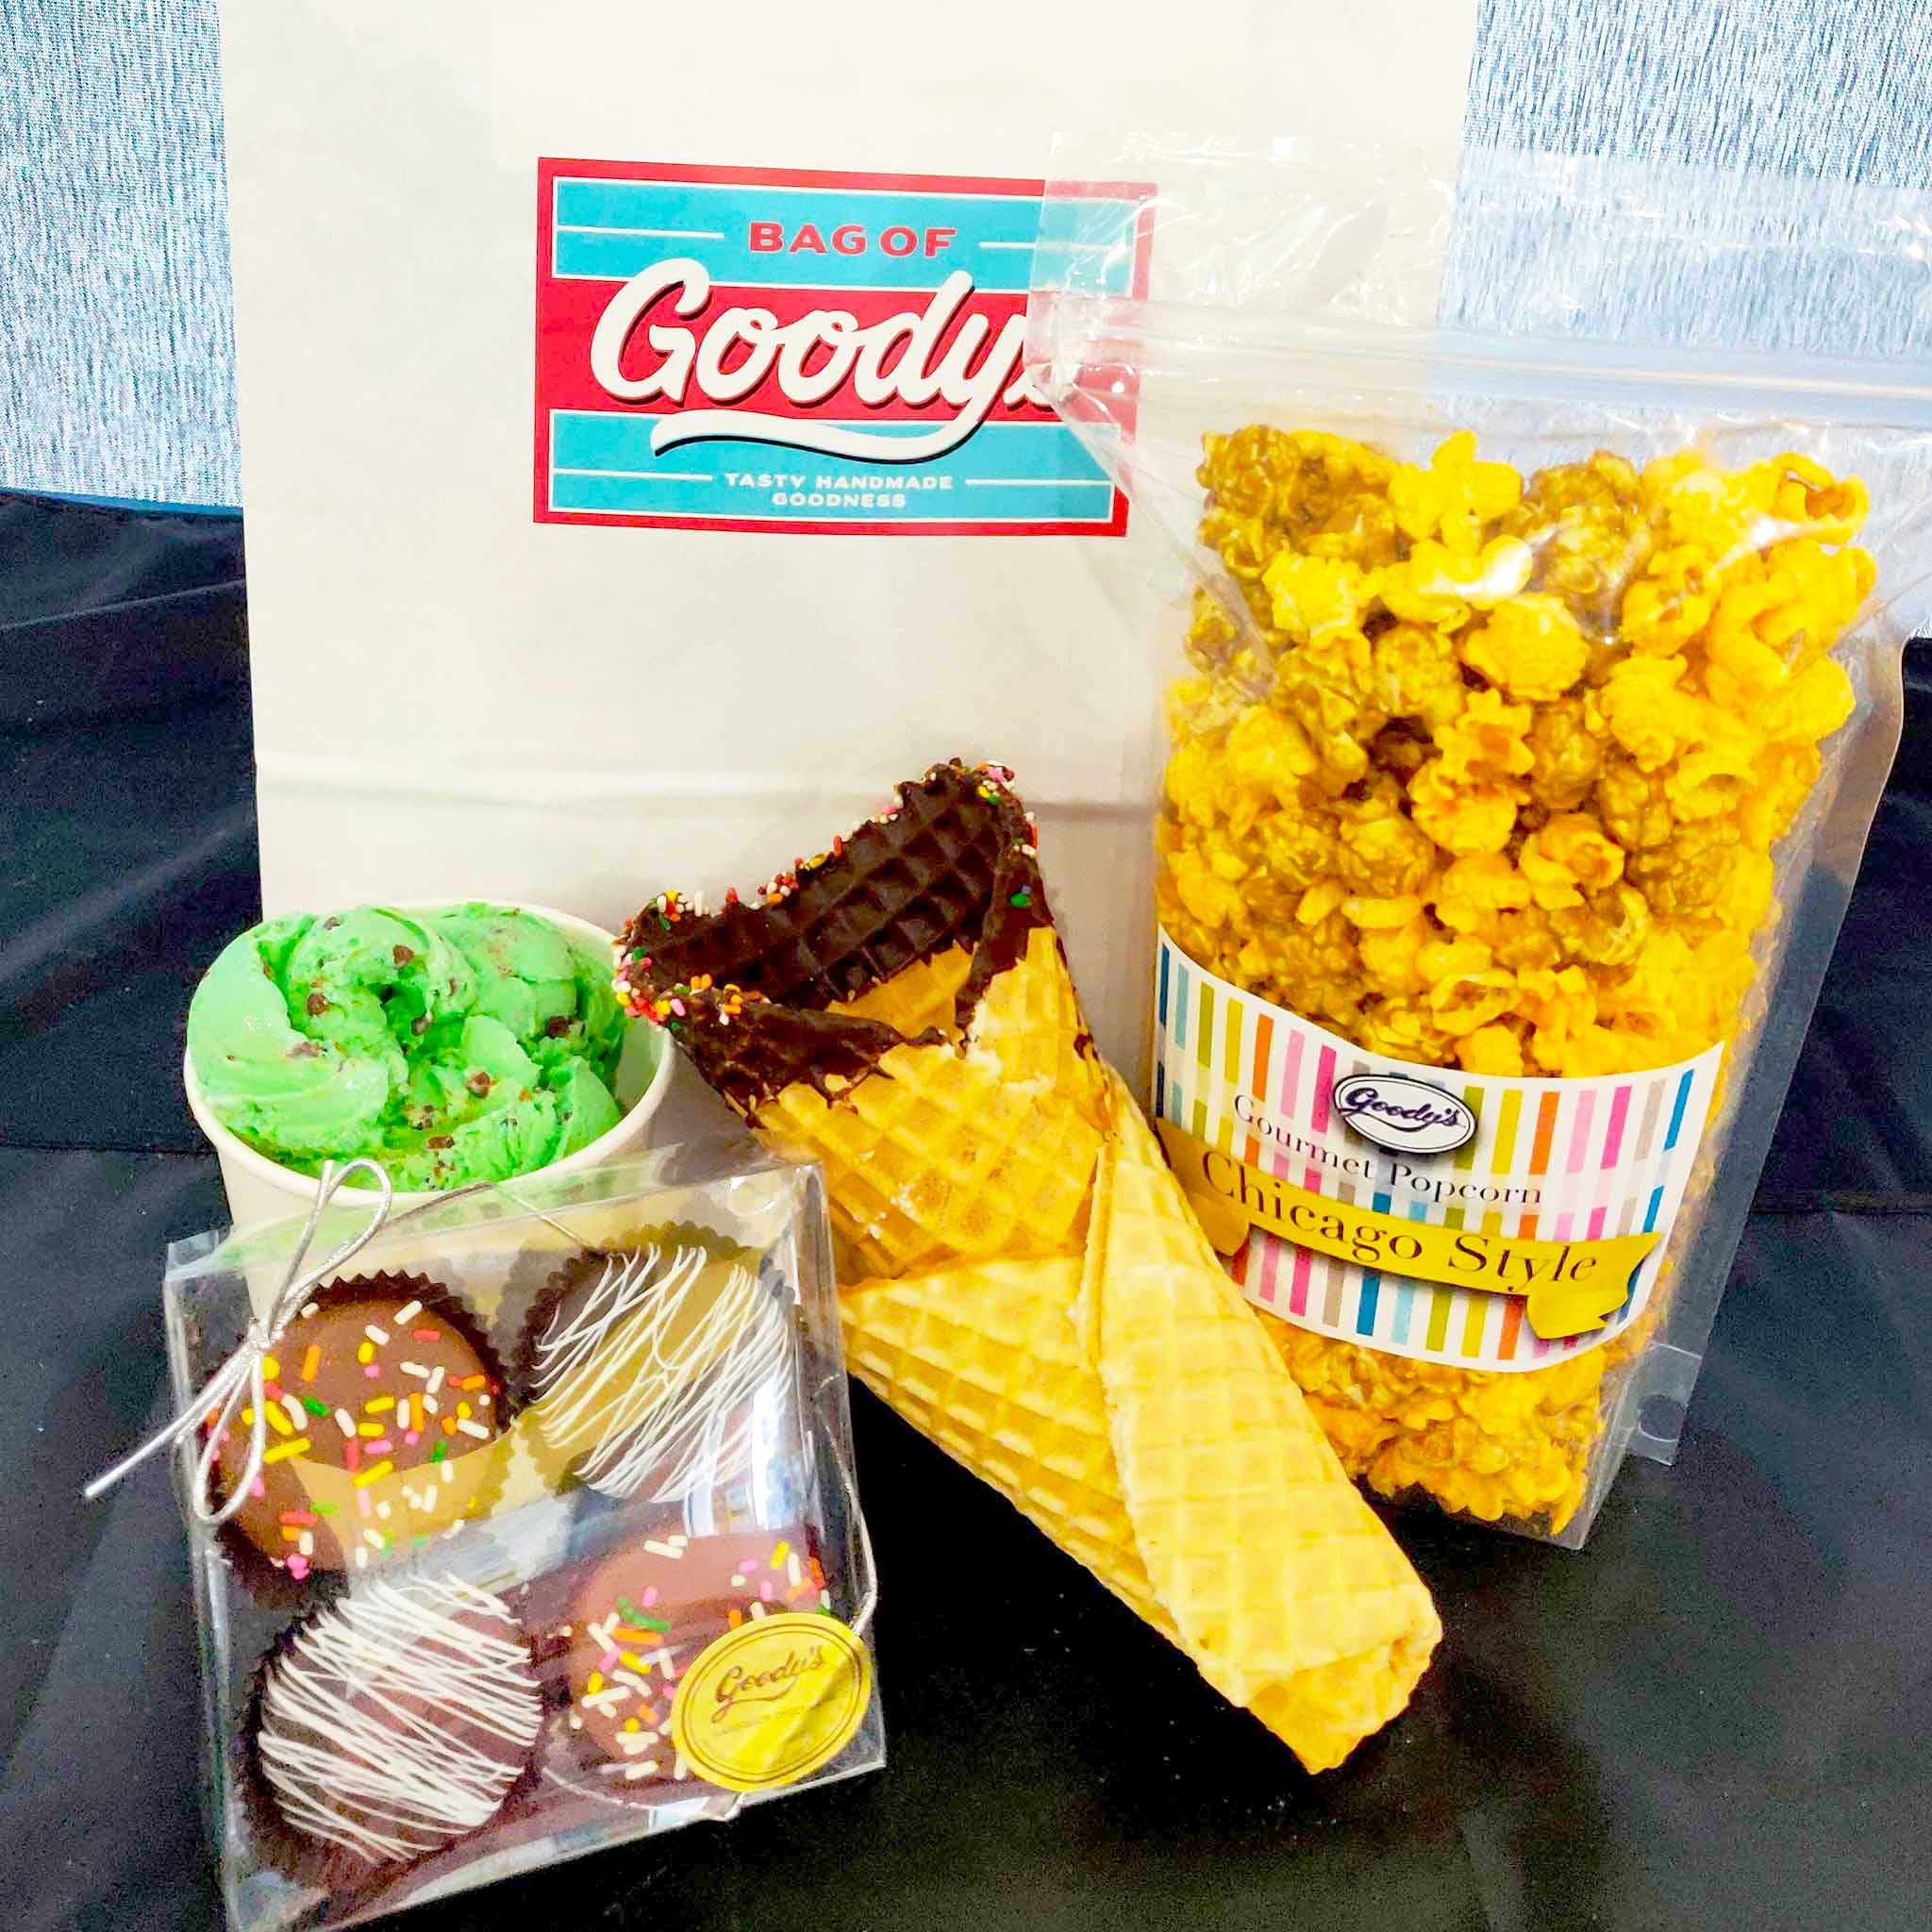 Goody's and Chill Bag